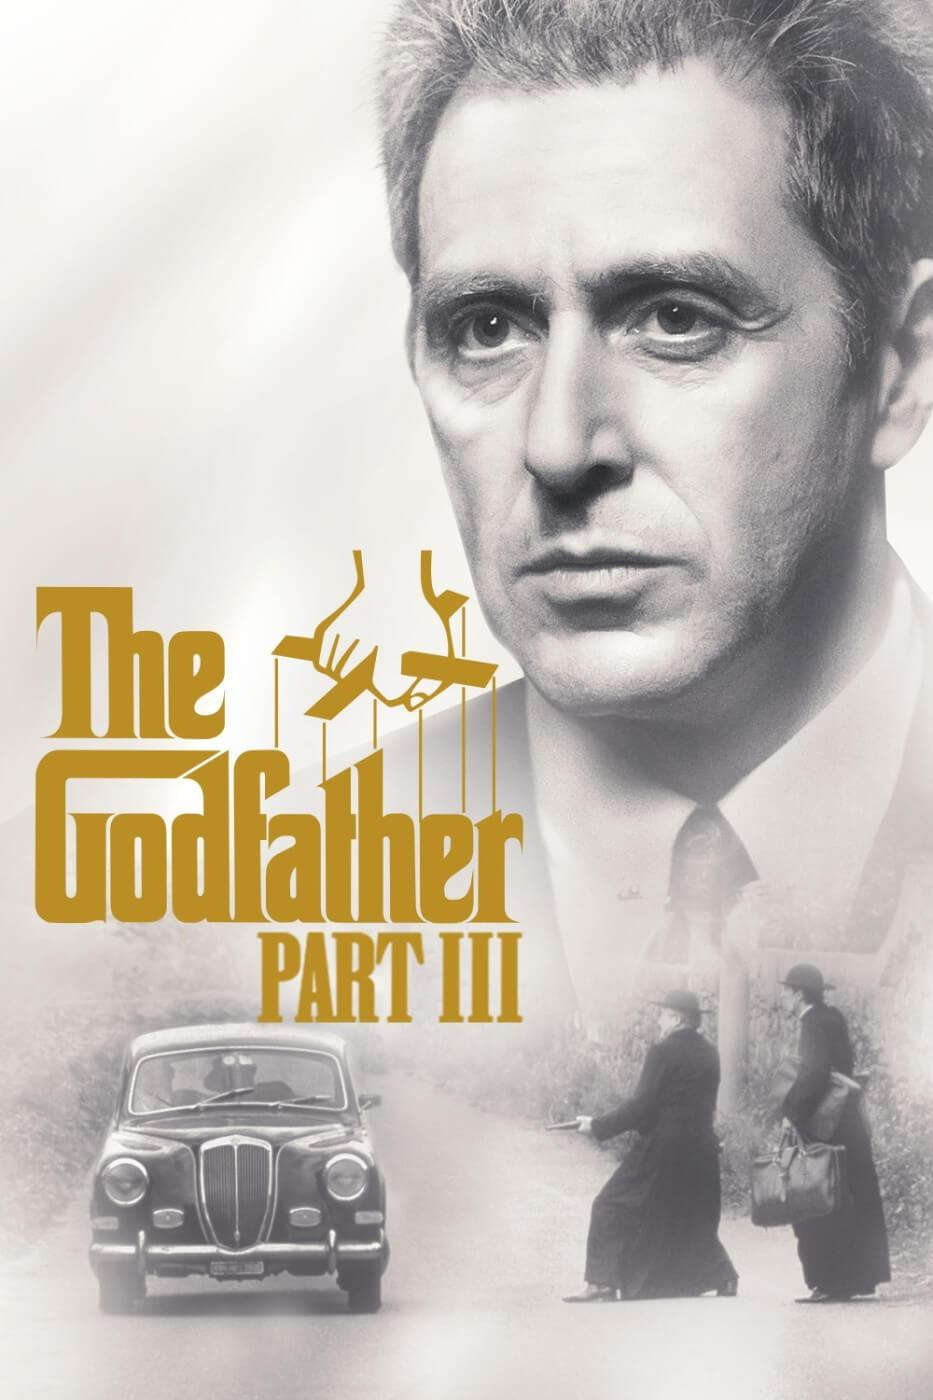 Movie Poster Art - The Godfather III - Tallenge Hollywood Poster ...